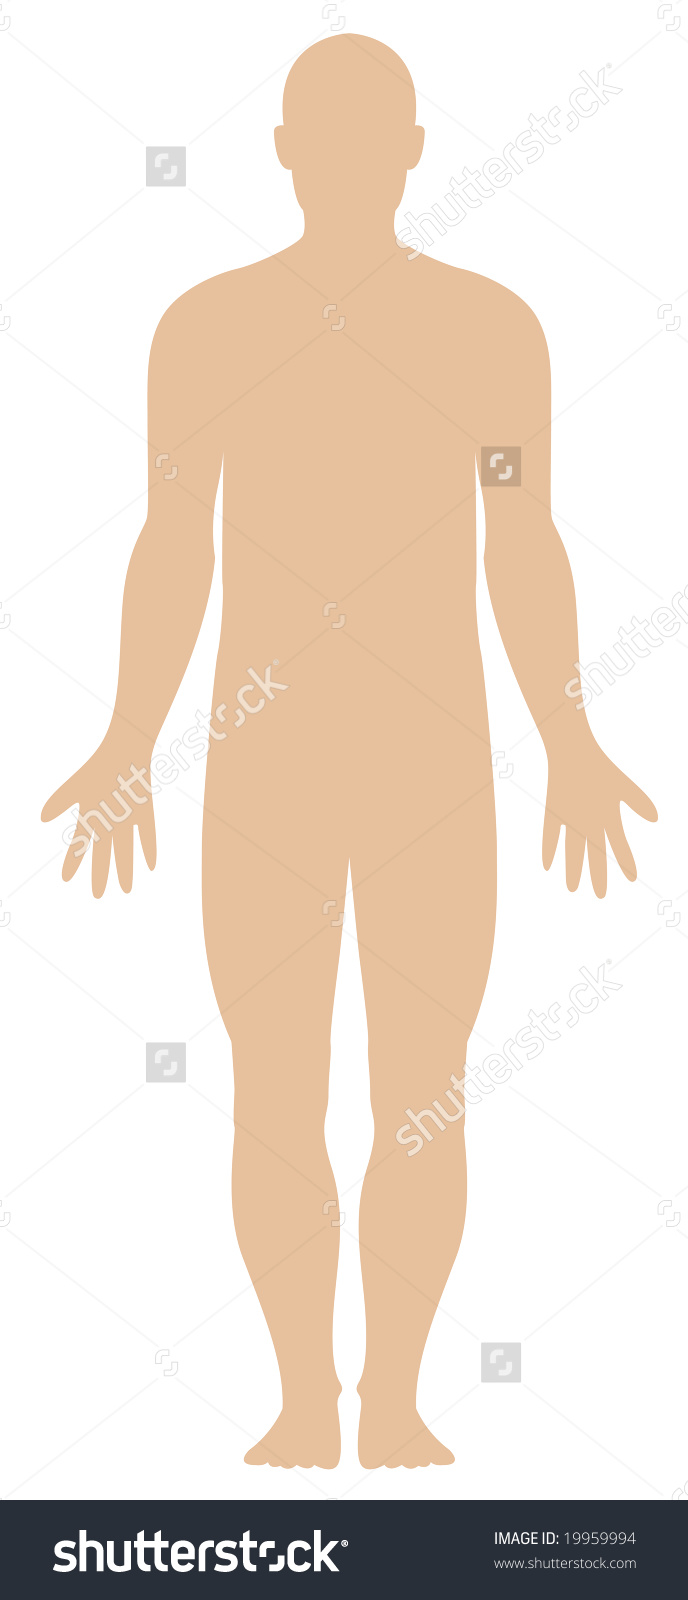 Illustration Plain Human Body Outline Stock Illustration 19959994.